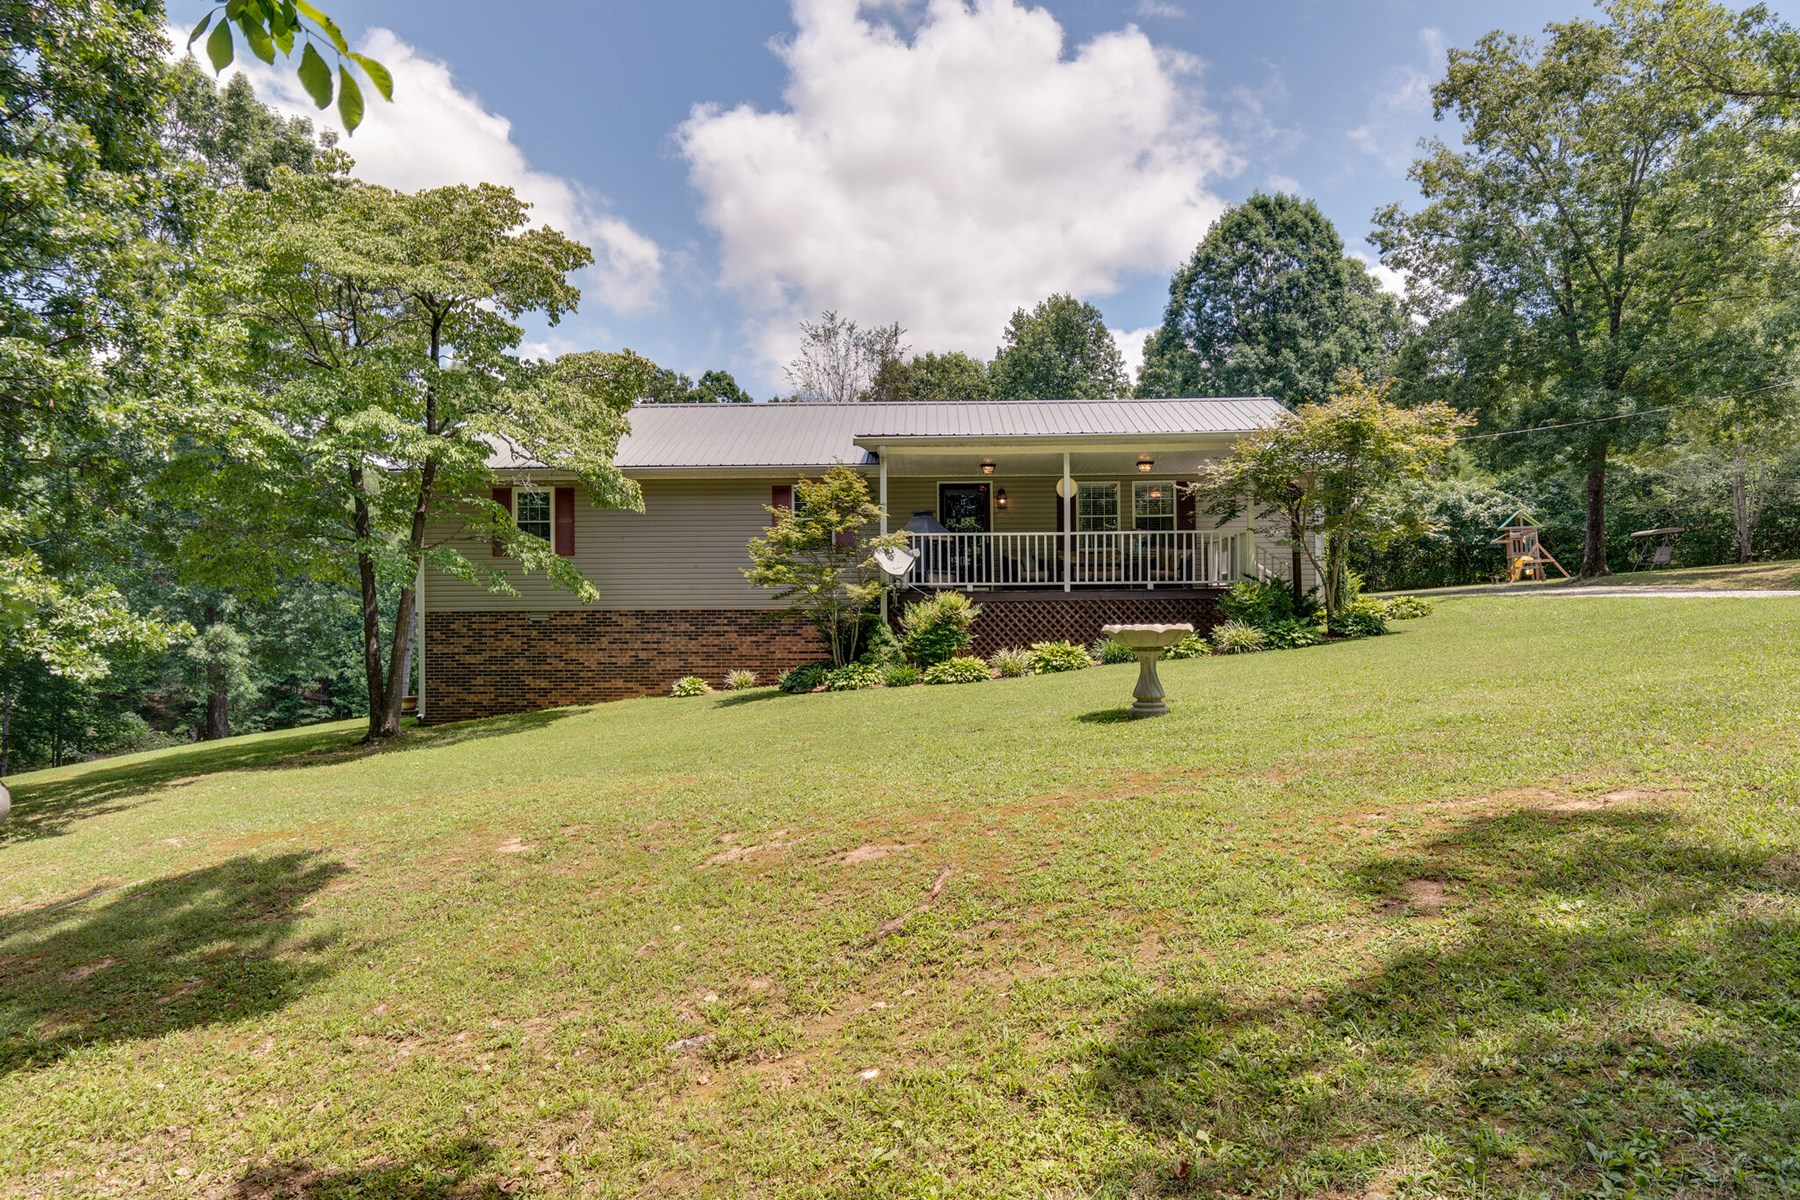 Tennessee Country Home with Recreational Acreage for Sale